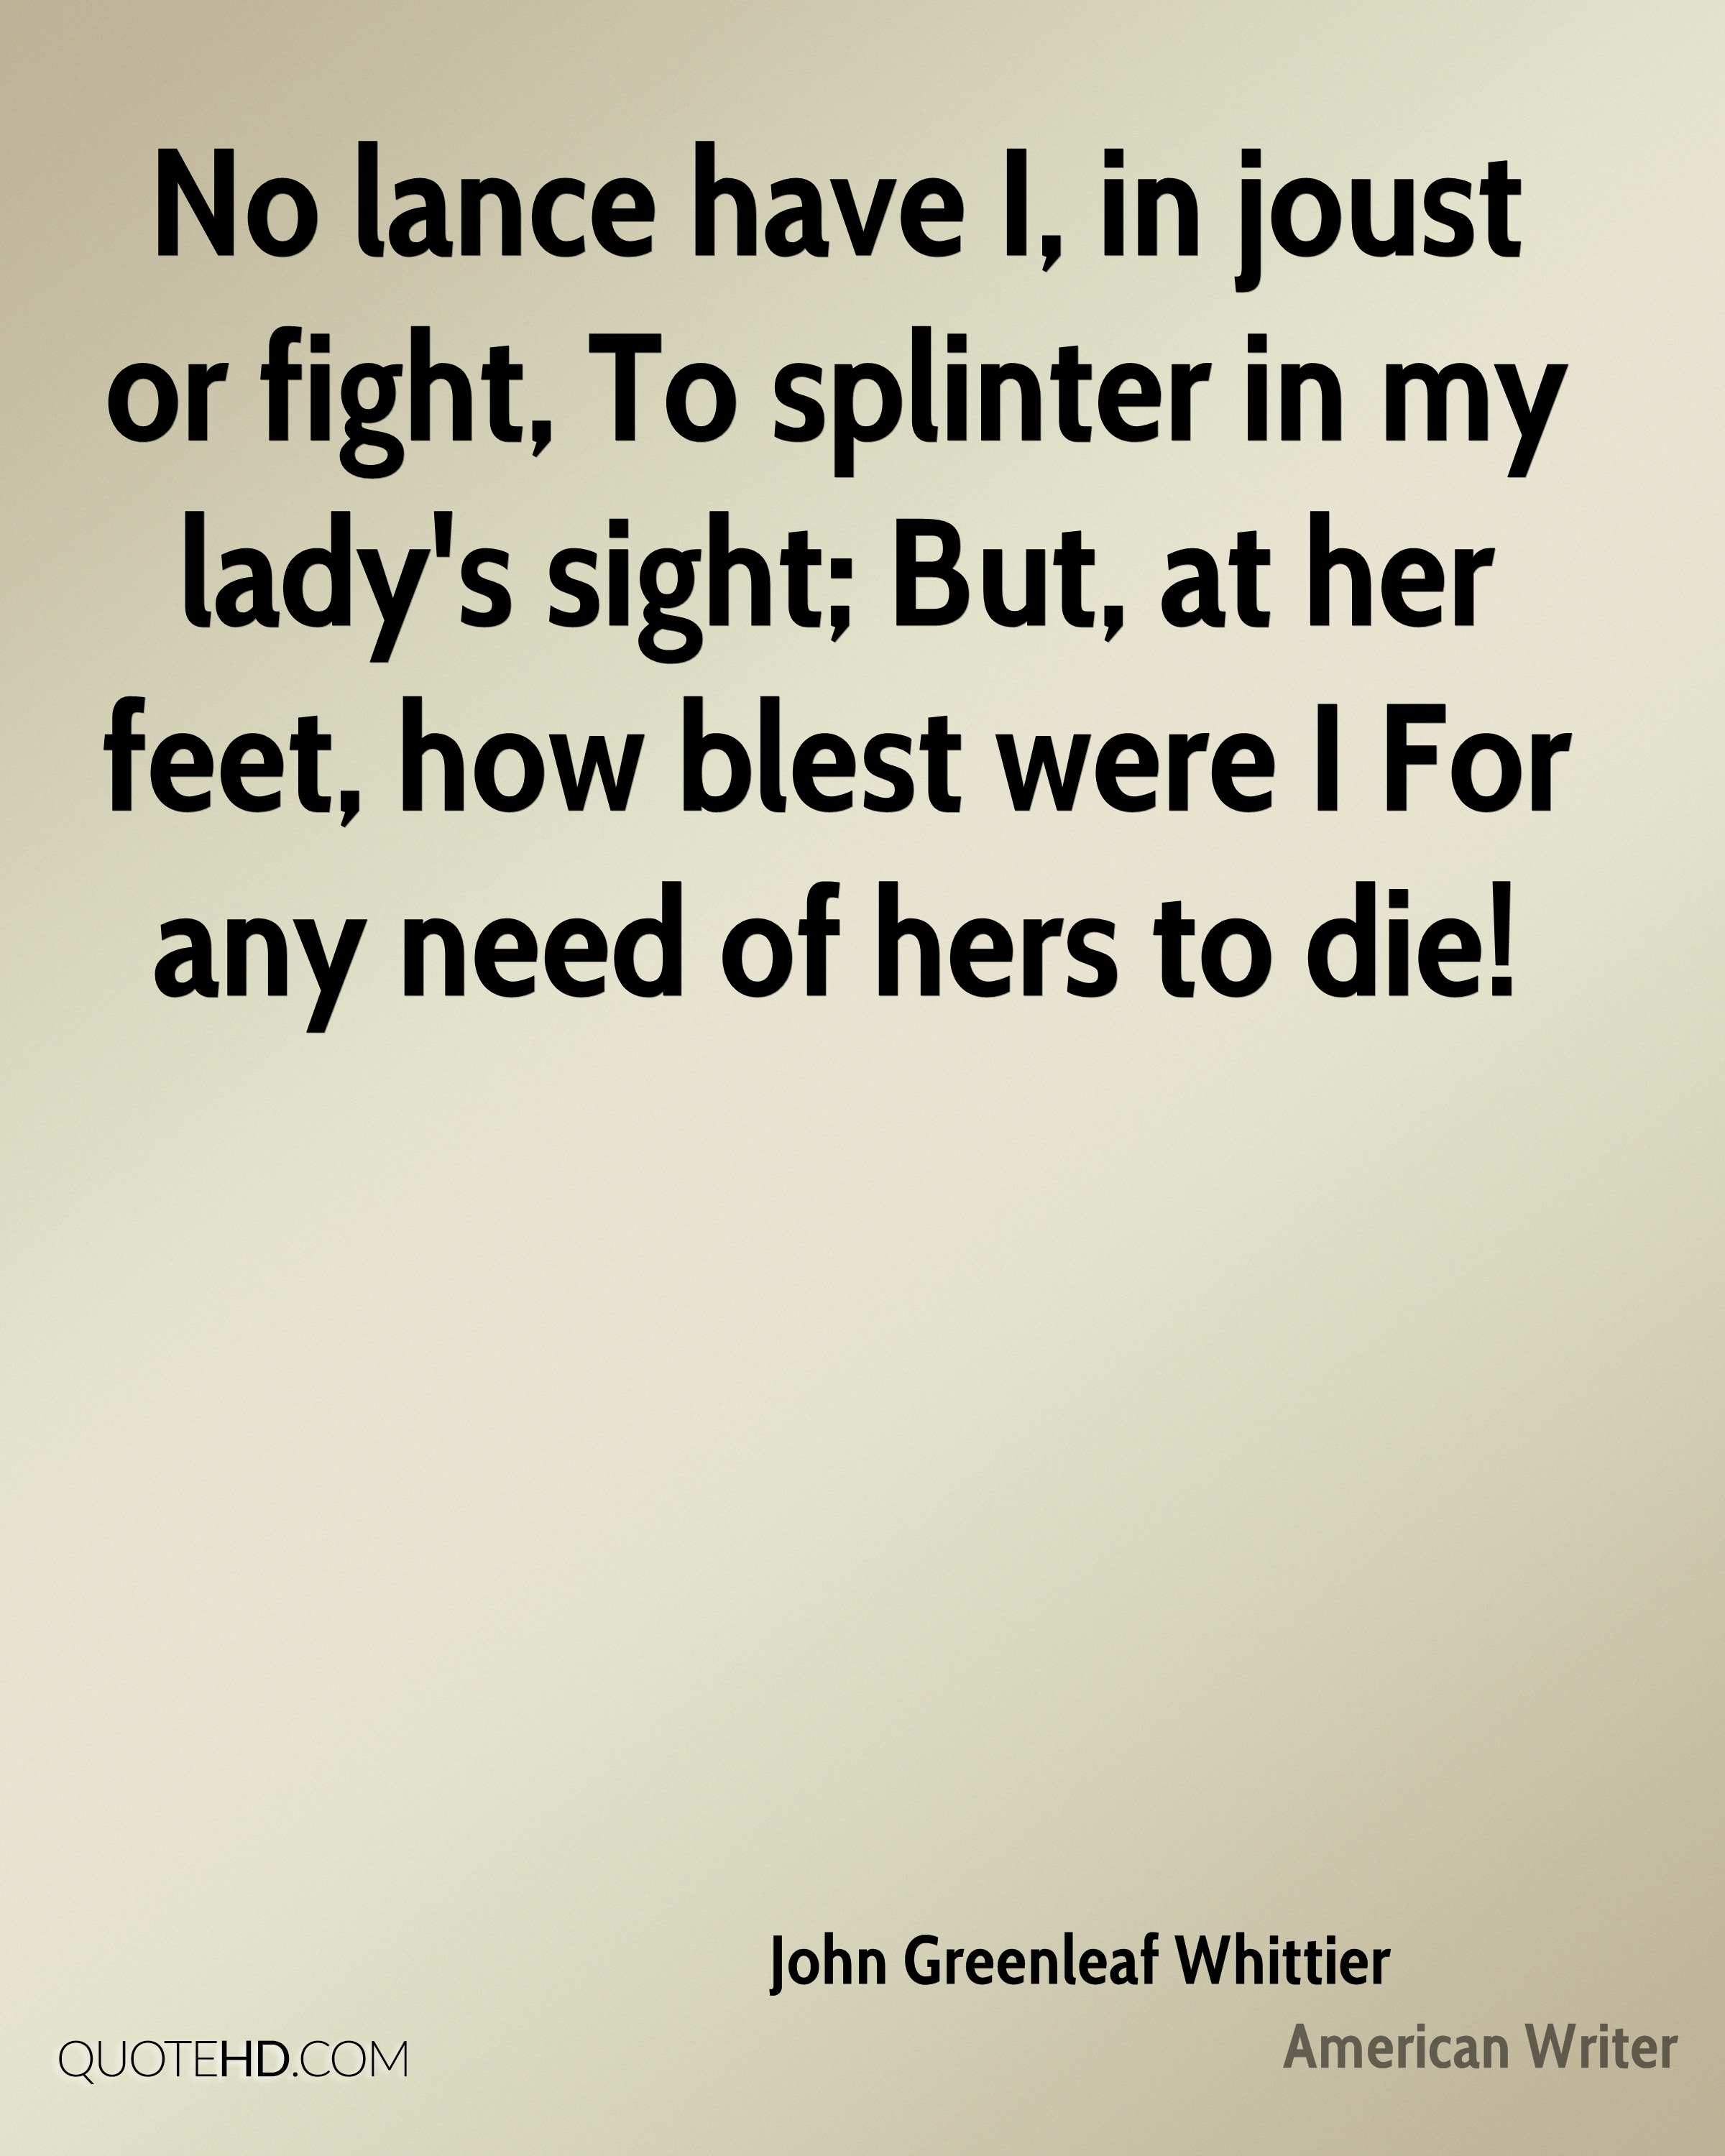 No lance have I, in joust or fight, To splinter in my lady's sight; But, at her feet, how blest were I For any need of hers to die!